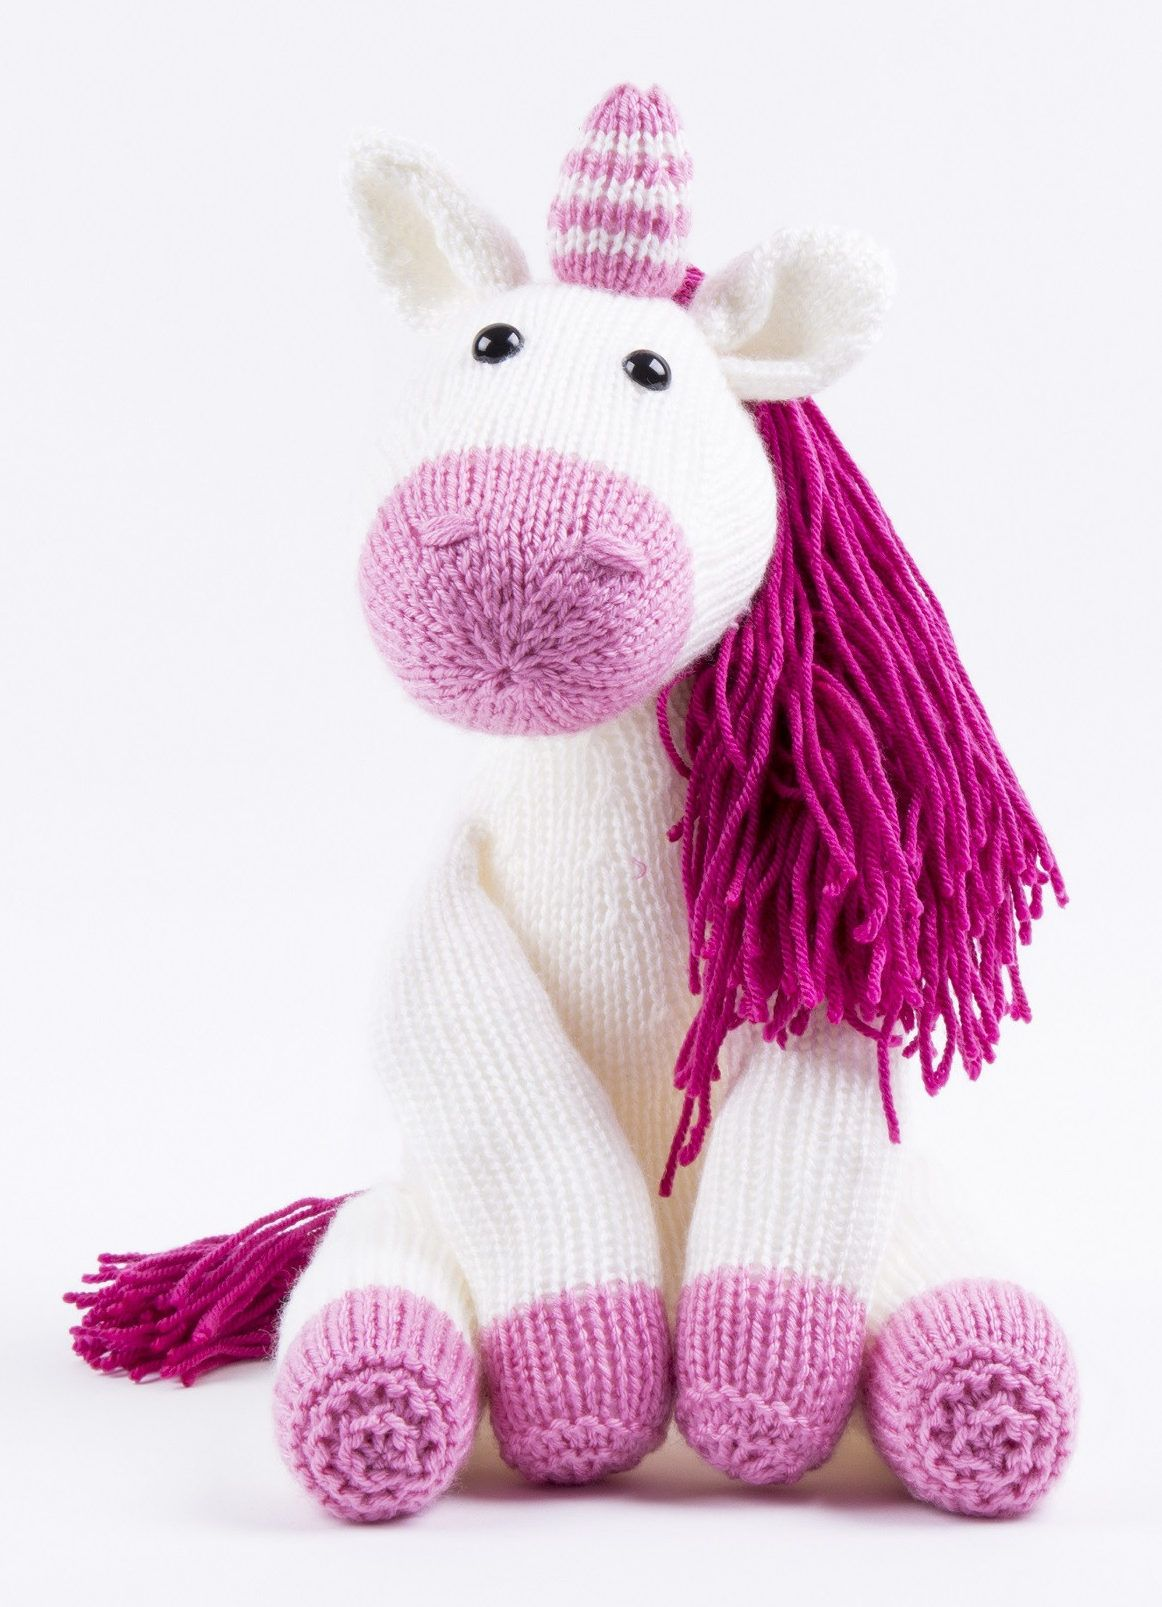 seated horse pony Girls STRIPED UNICORN TOY KNITTING PATTERN DK 45cm